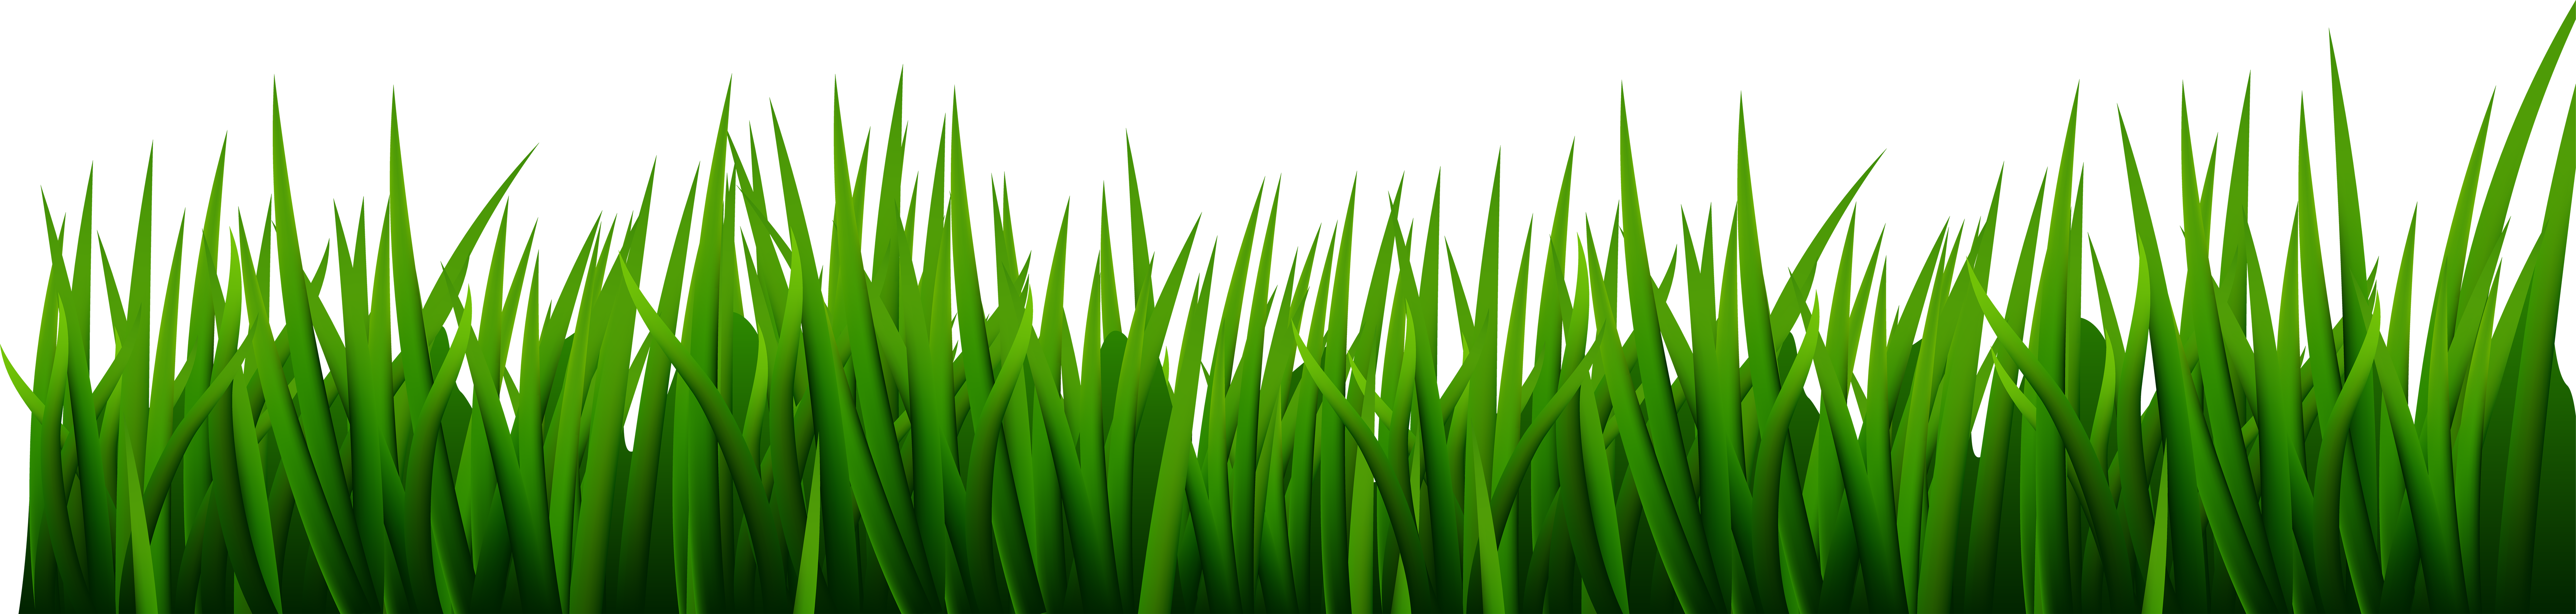 Clipart grass forage. Ground free on dumielauxepices